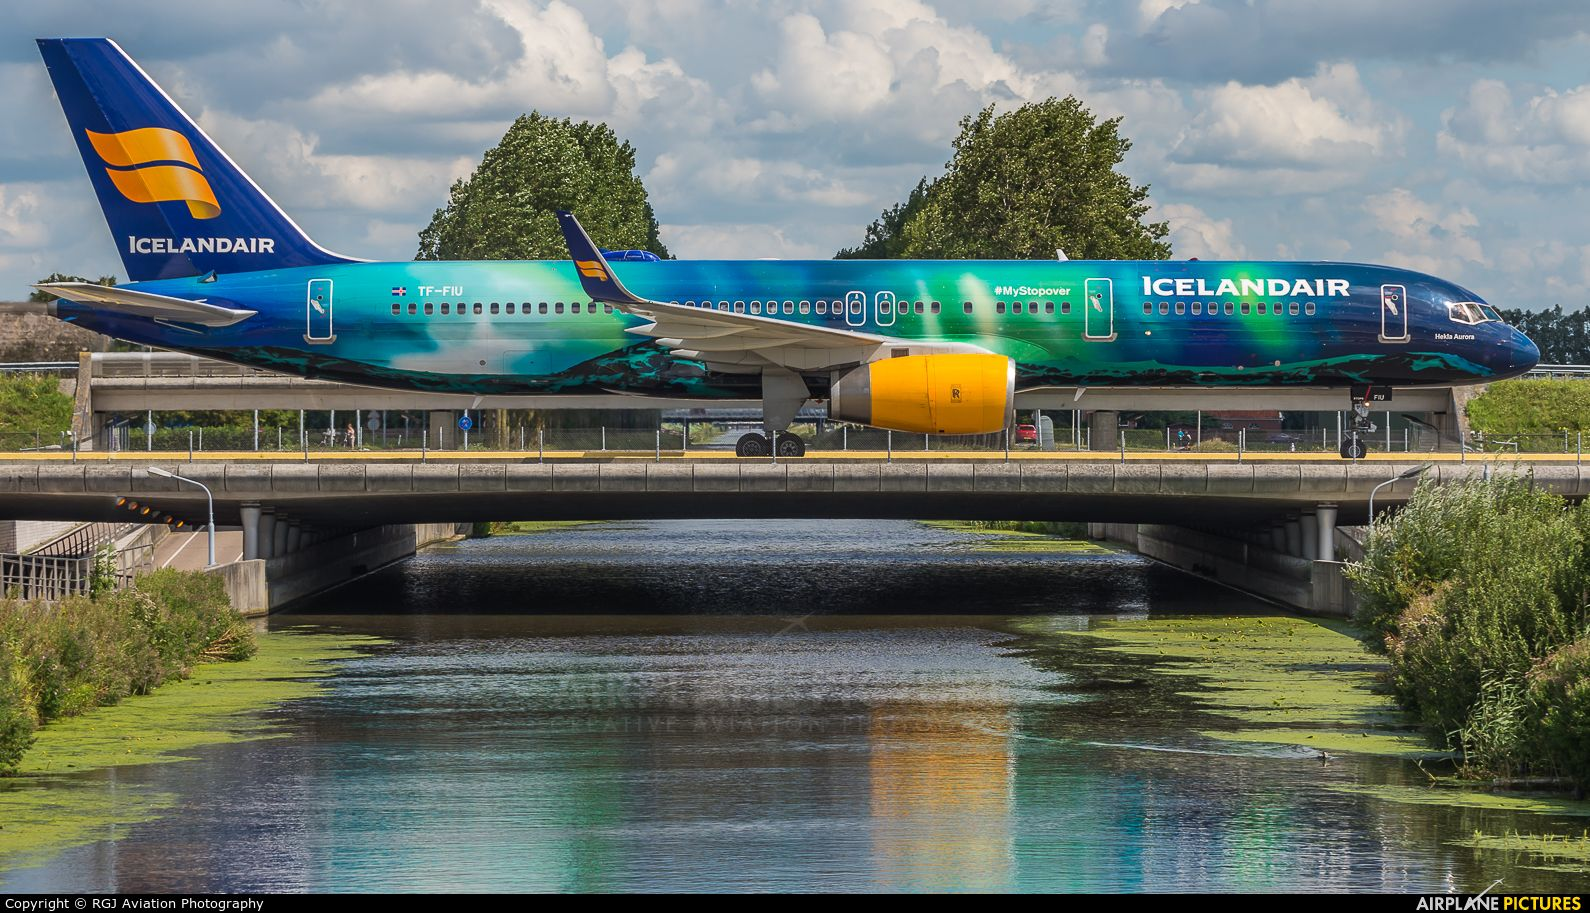 Icelandair Boeing 757 200wl Airport Netherlands Amsterdam Schiphol Ams Eham Airplane Pictures Net T Aviation Airplane Boeing Aircraft Iceland Air